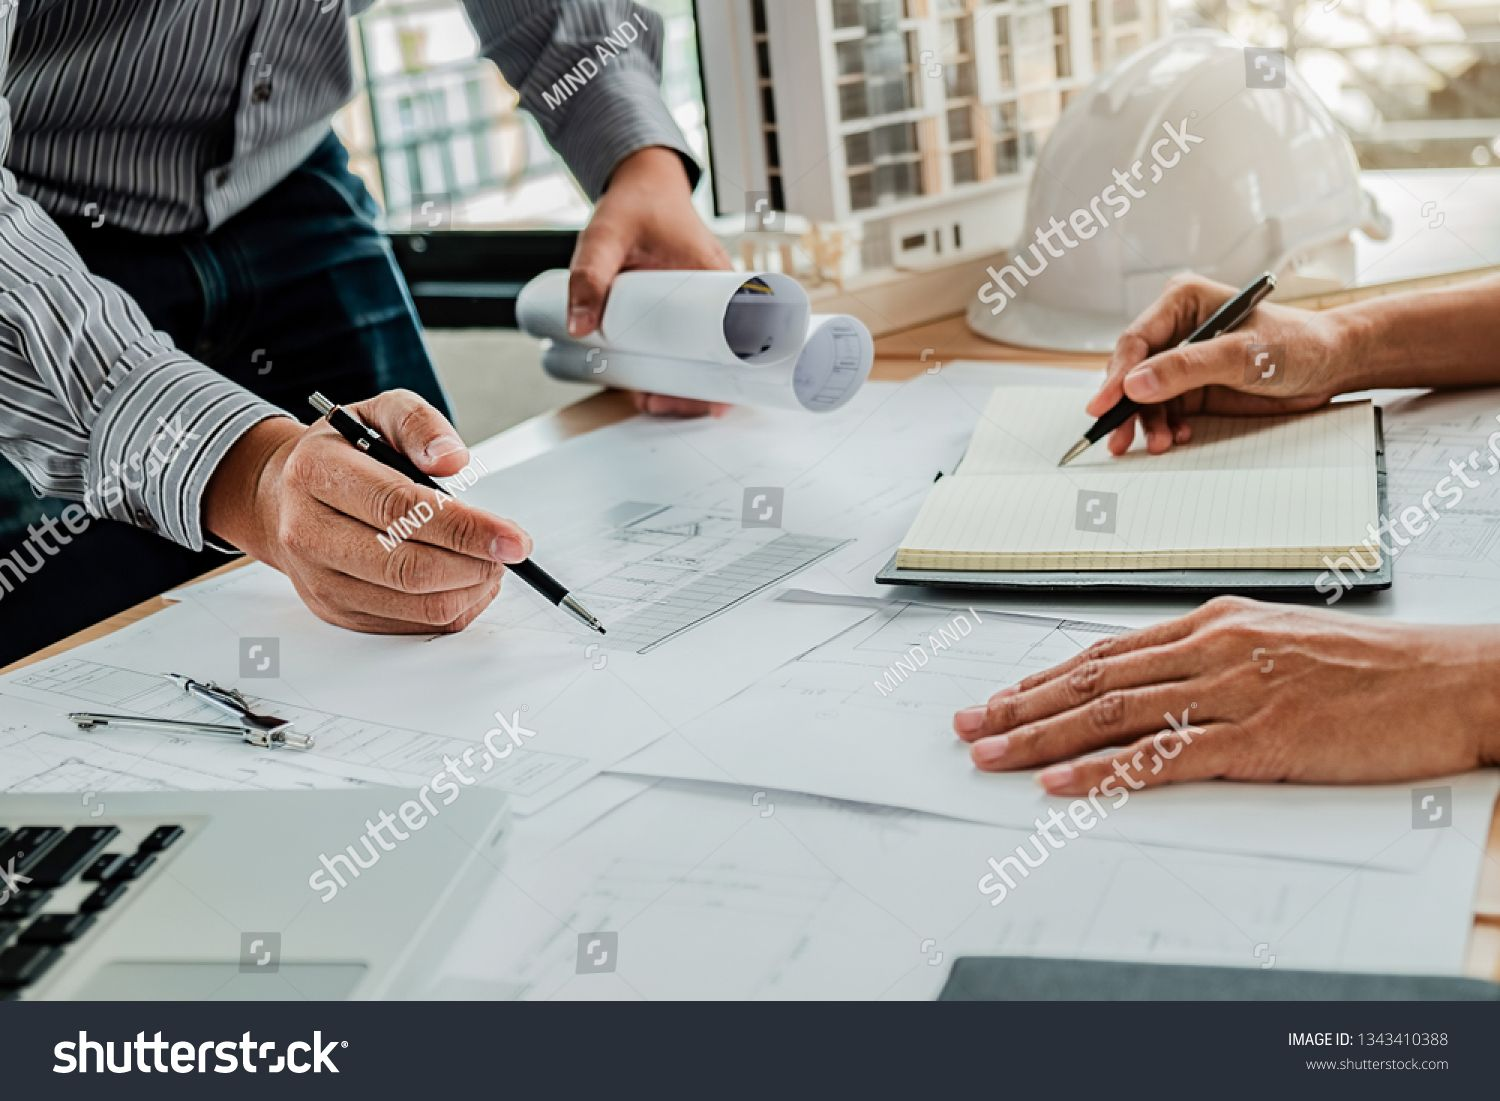 Architect Engineer Design Working On Blueprint Planning Concept Construction Concept Sponsored Affiliate Design Working Creative Resume Templates Design